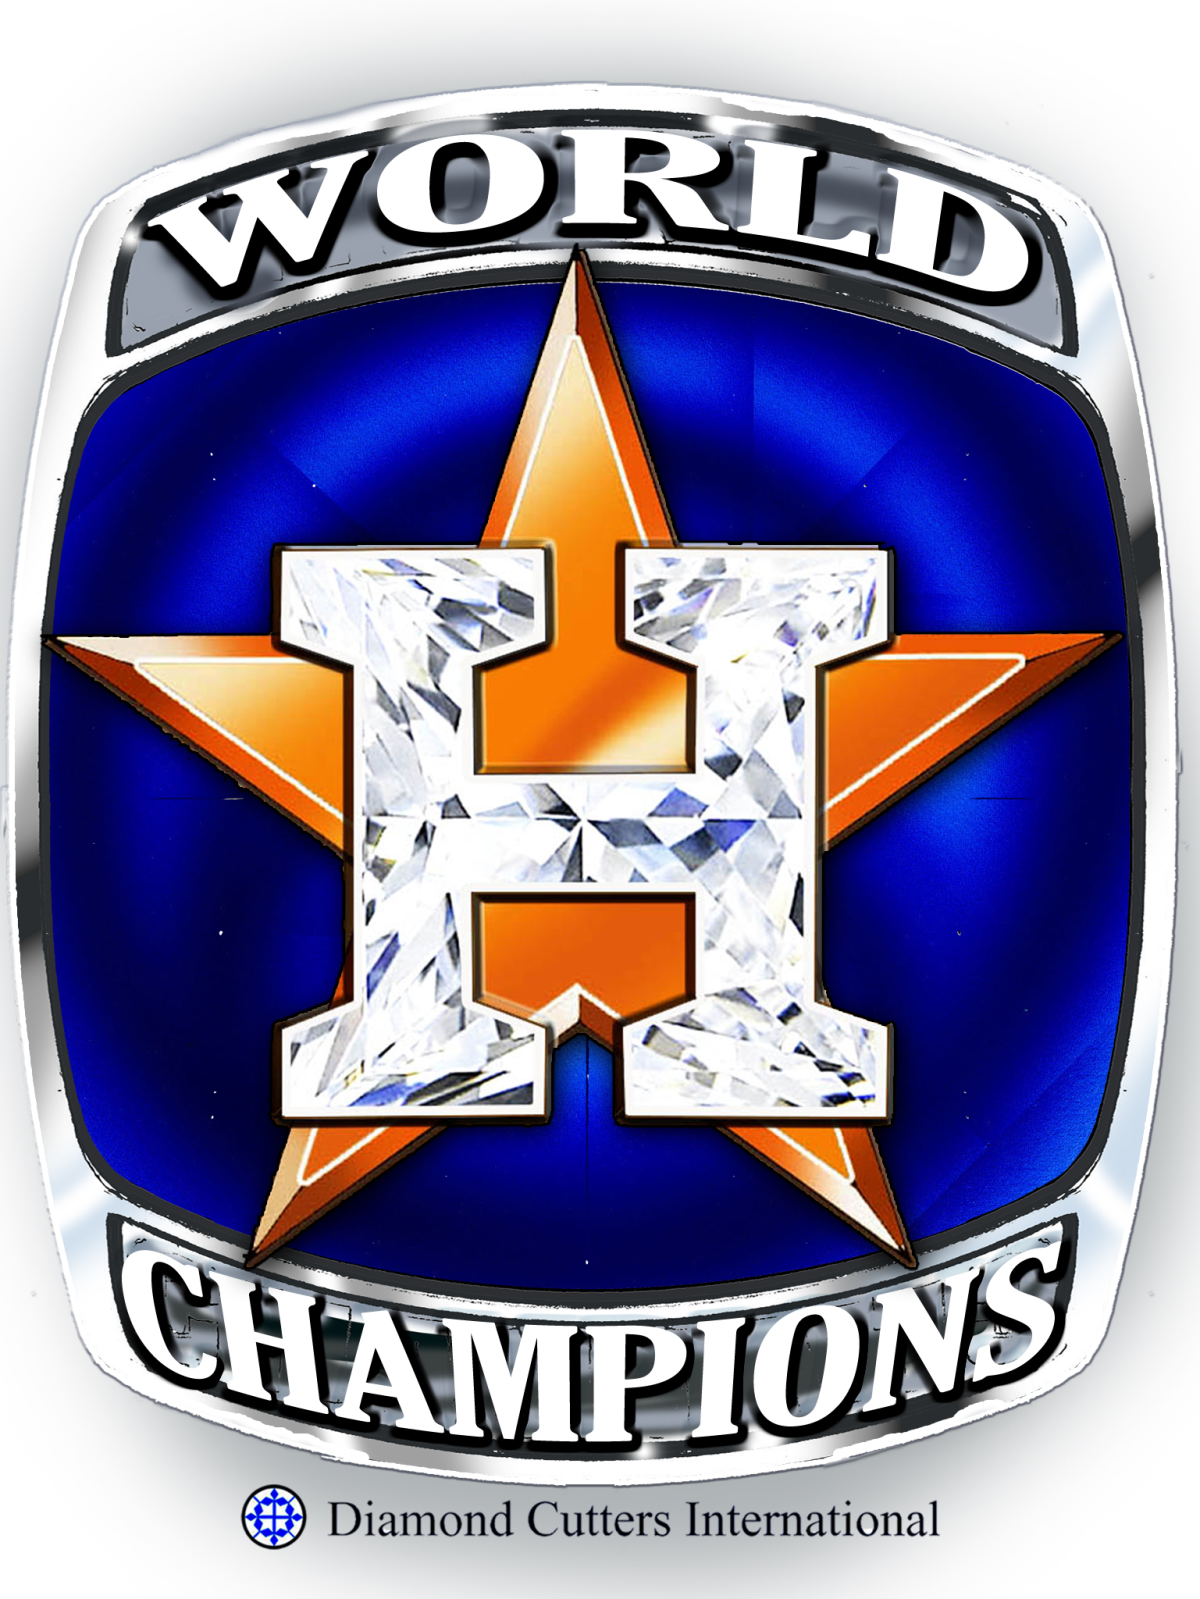 Houston, Astros World Series ring, November 2017